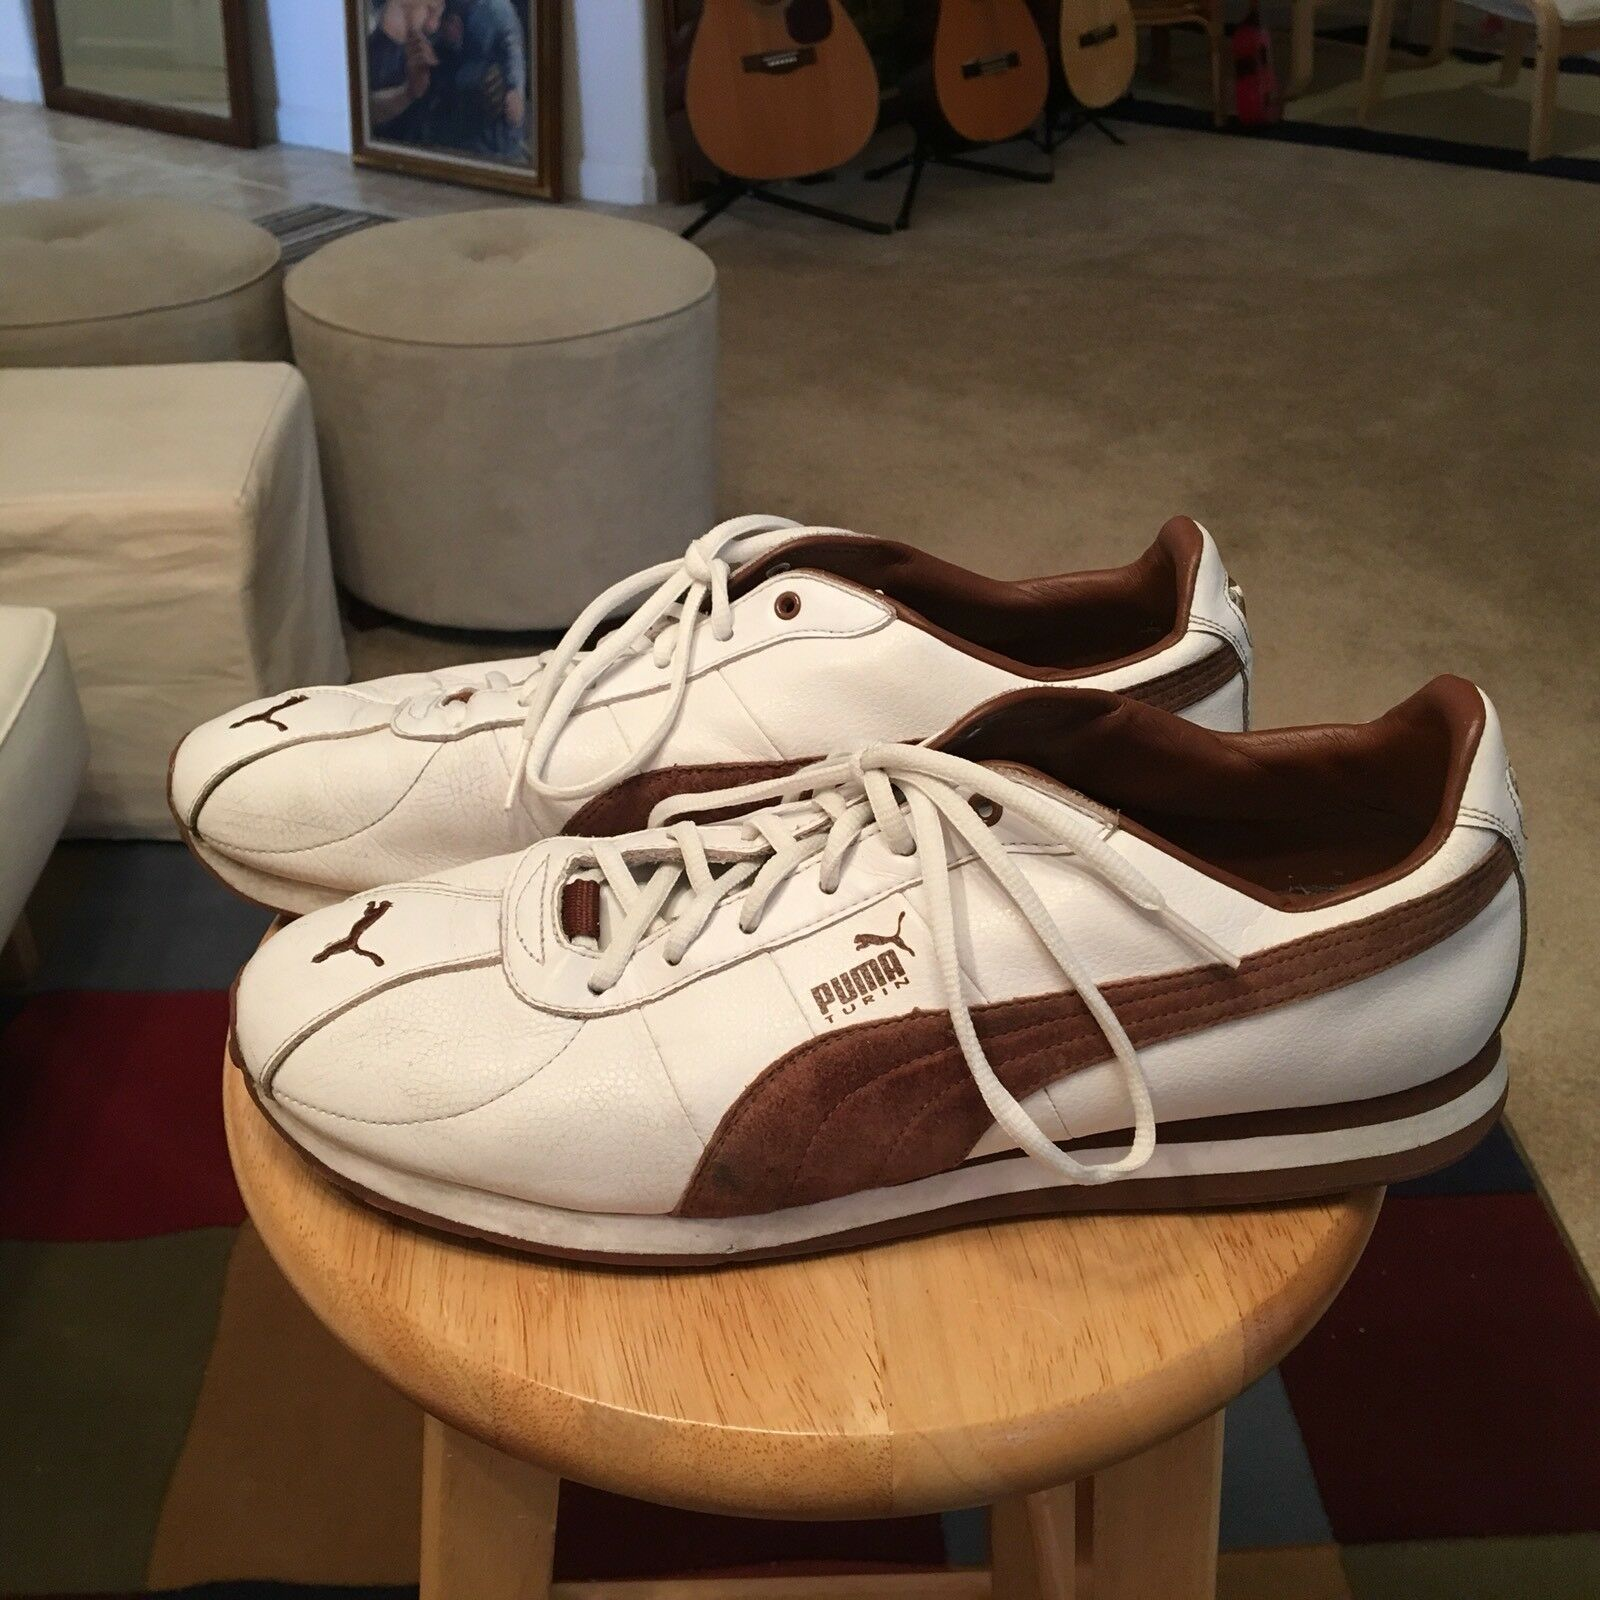 Vintage Puma TURIN White/Brown Trim Men's US13 Leather Athletic Sneakers Shoes